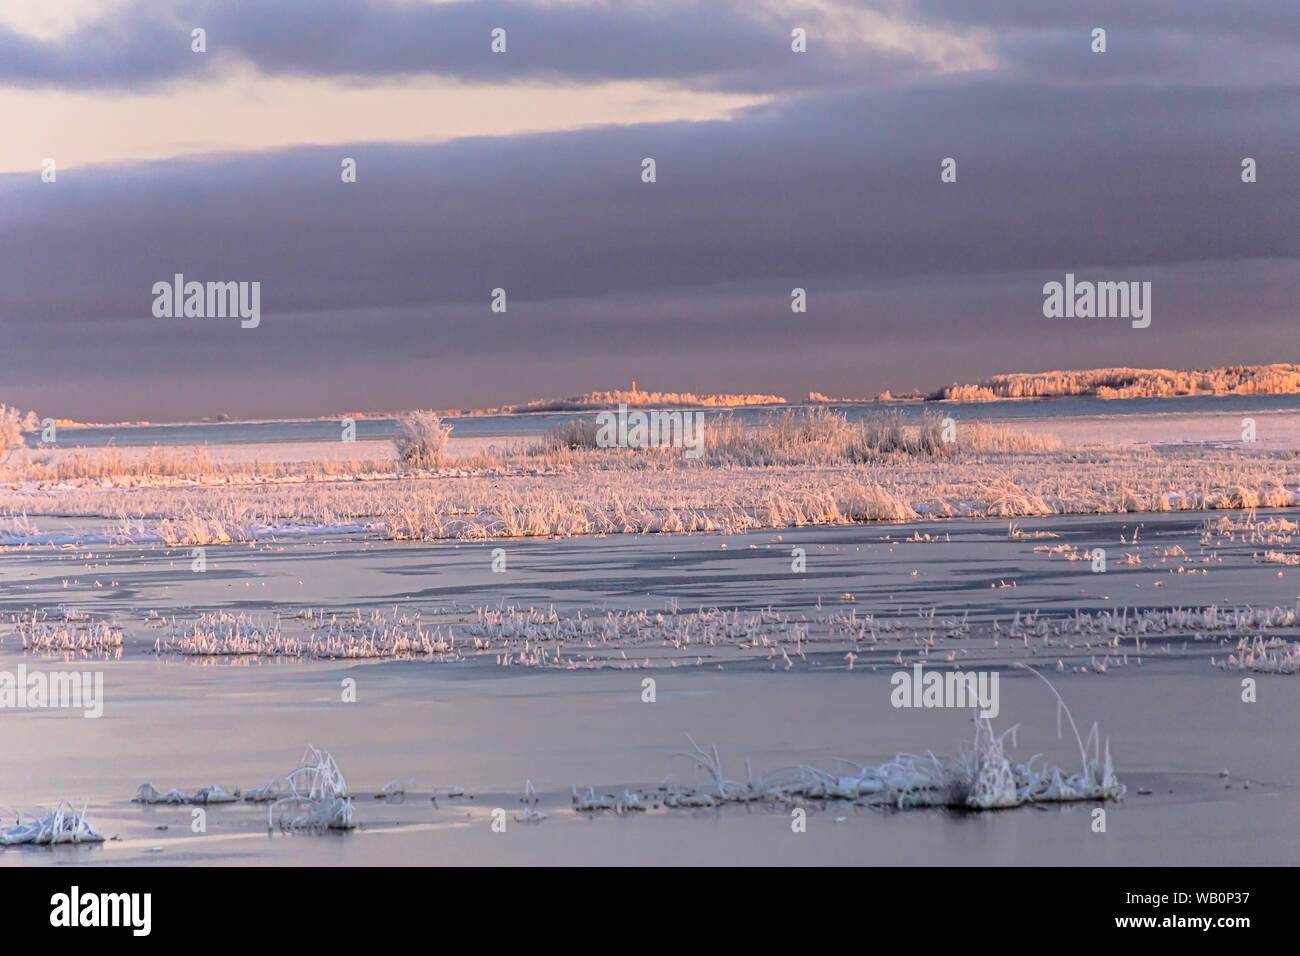 Winter time sea is frozen and frosty beach landscape,Hailuoto island,Bothnian Bay,North Ostrobothnia, Finland Stock Photo